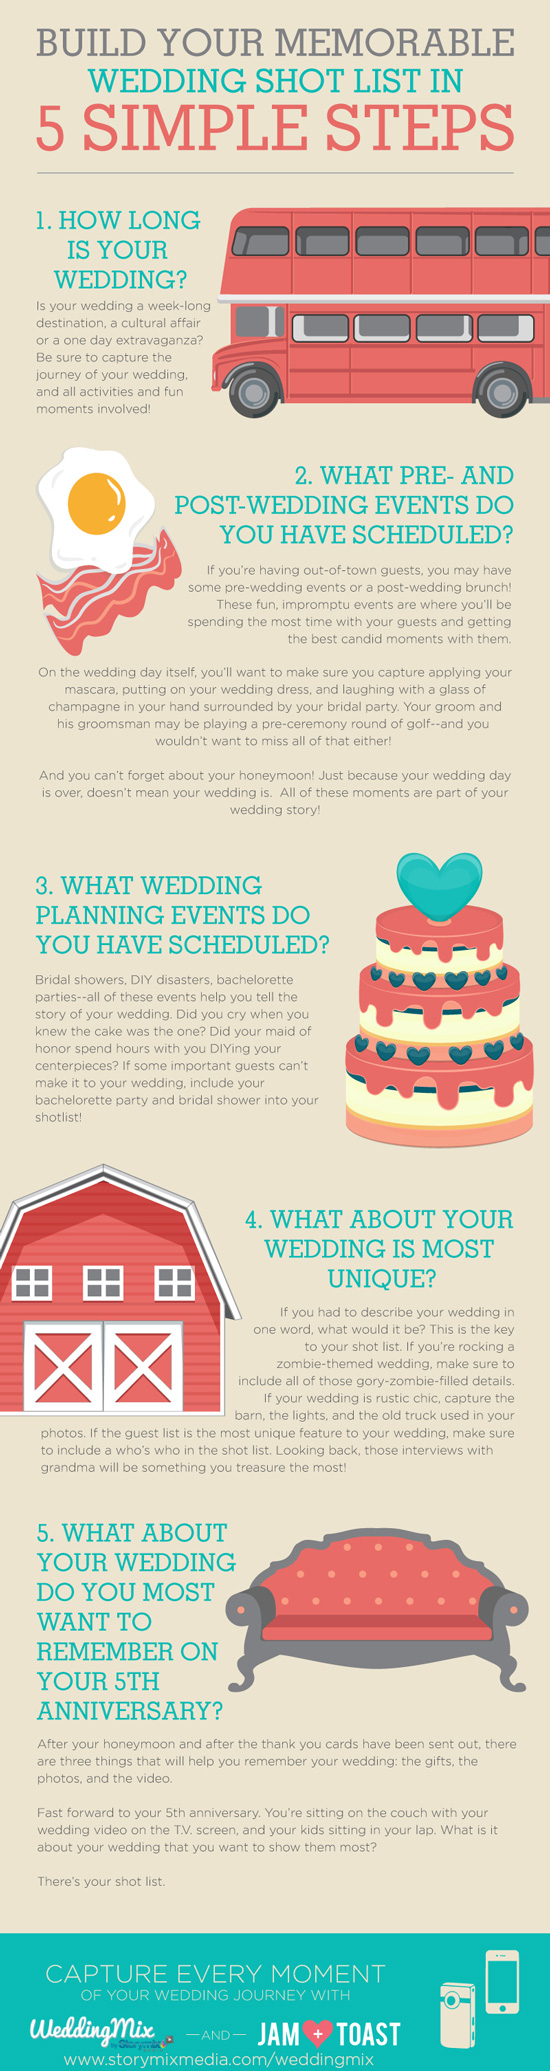 5 totally clever ideas for a unique wedding shot list